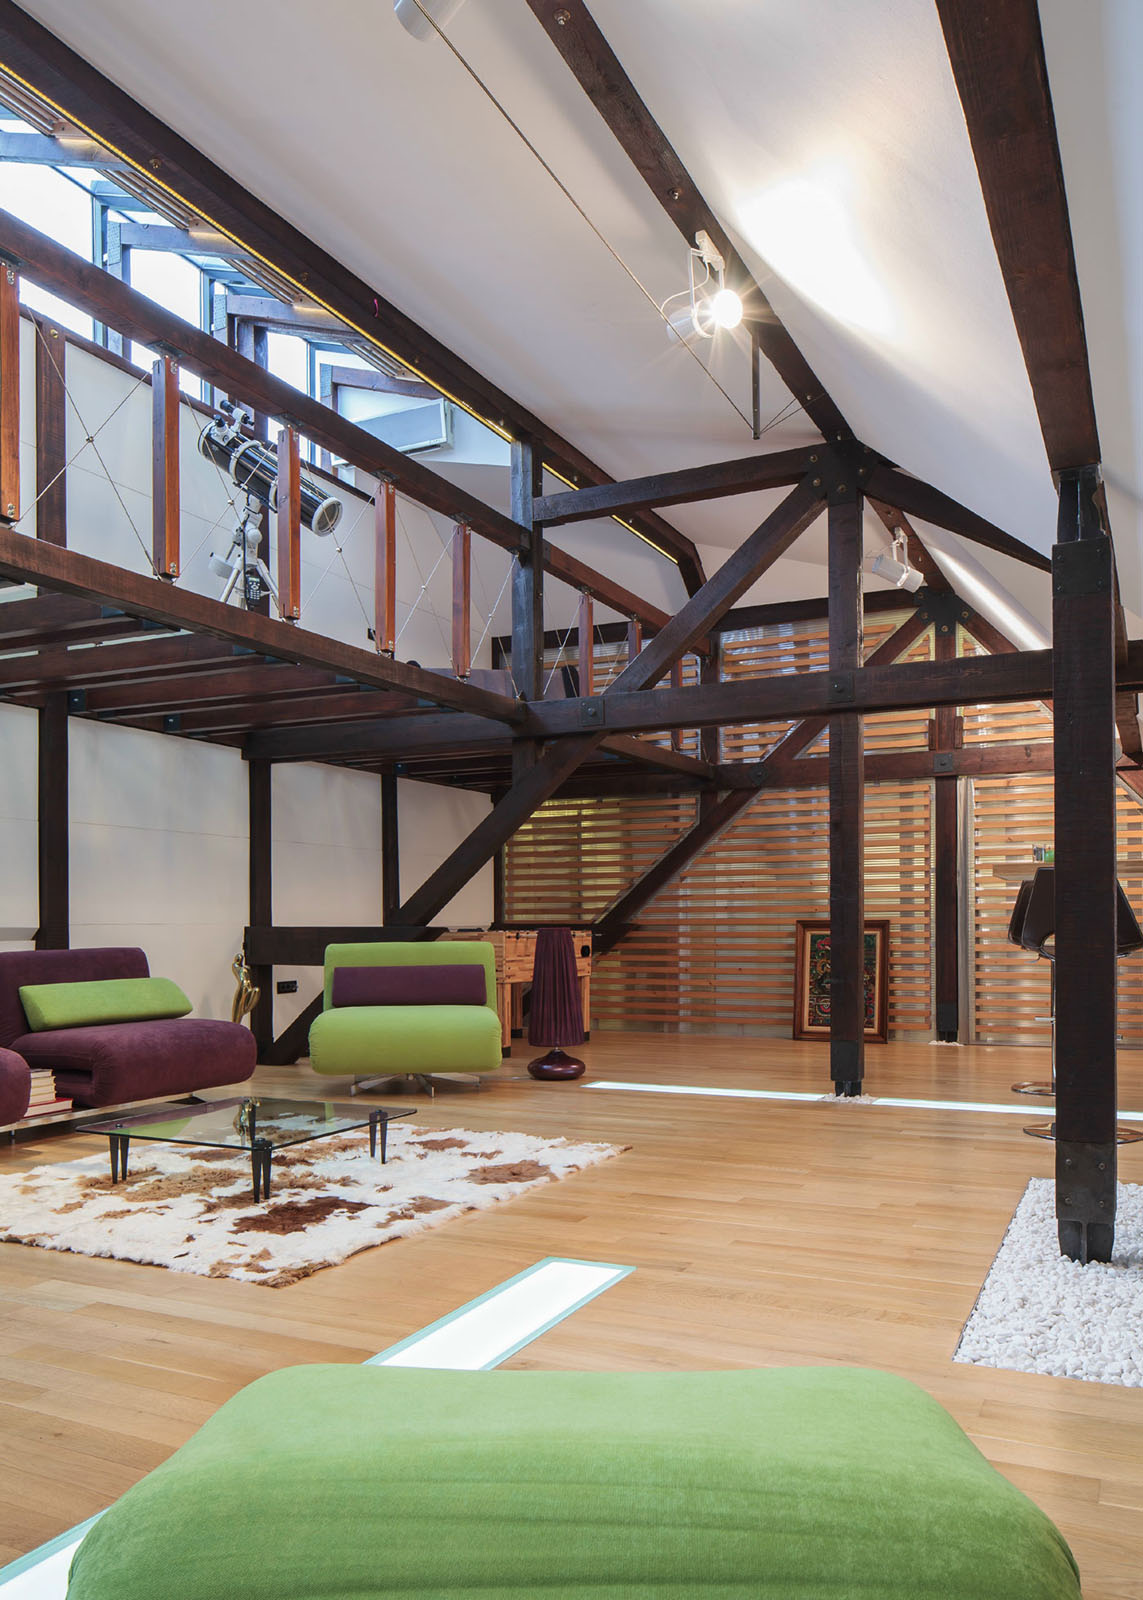 Attic Loft with Wood Beams